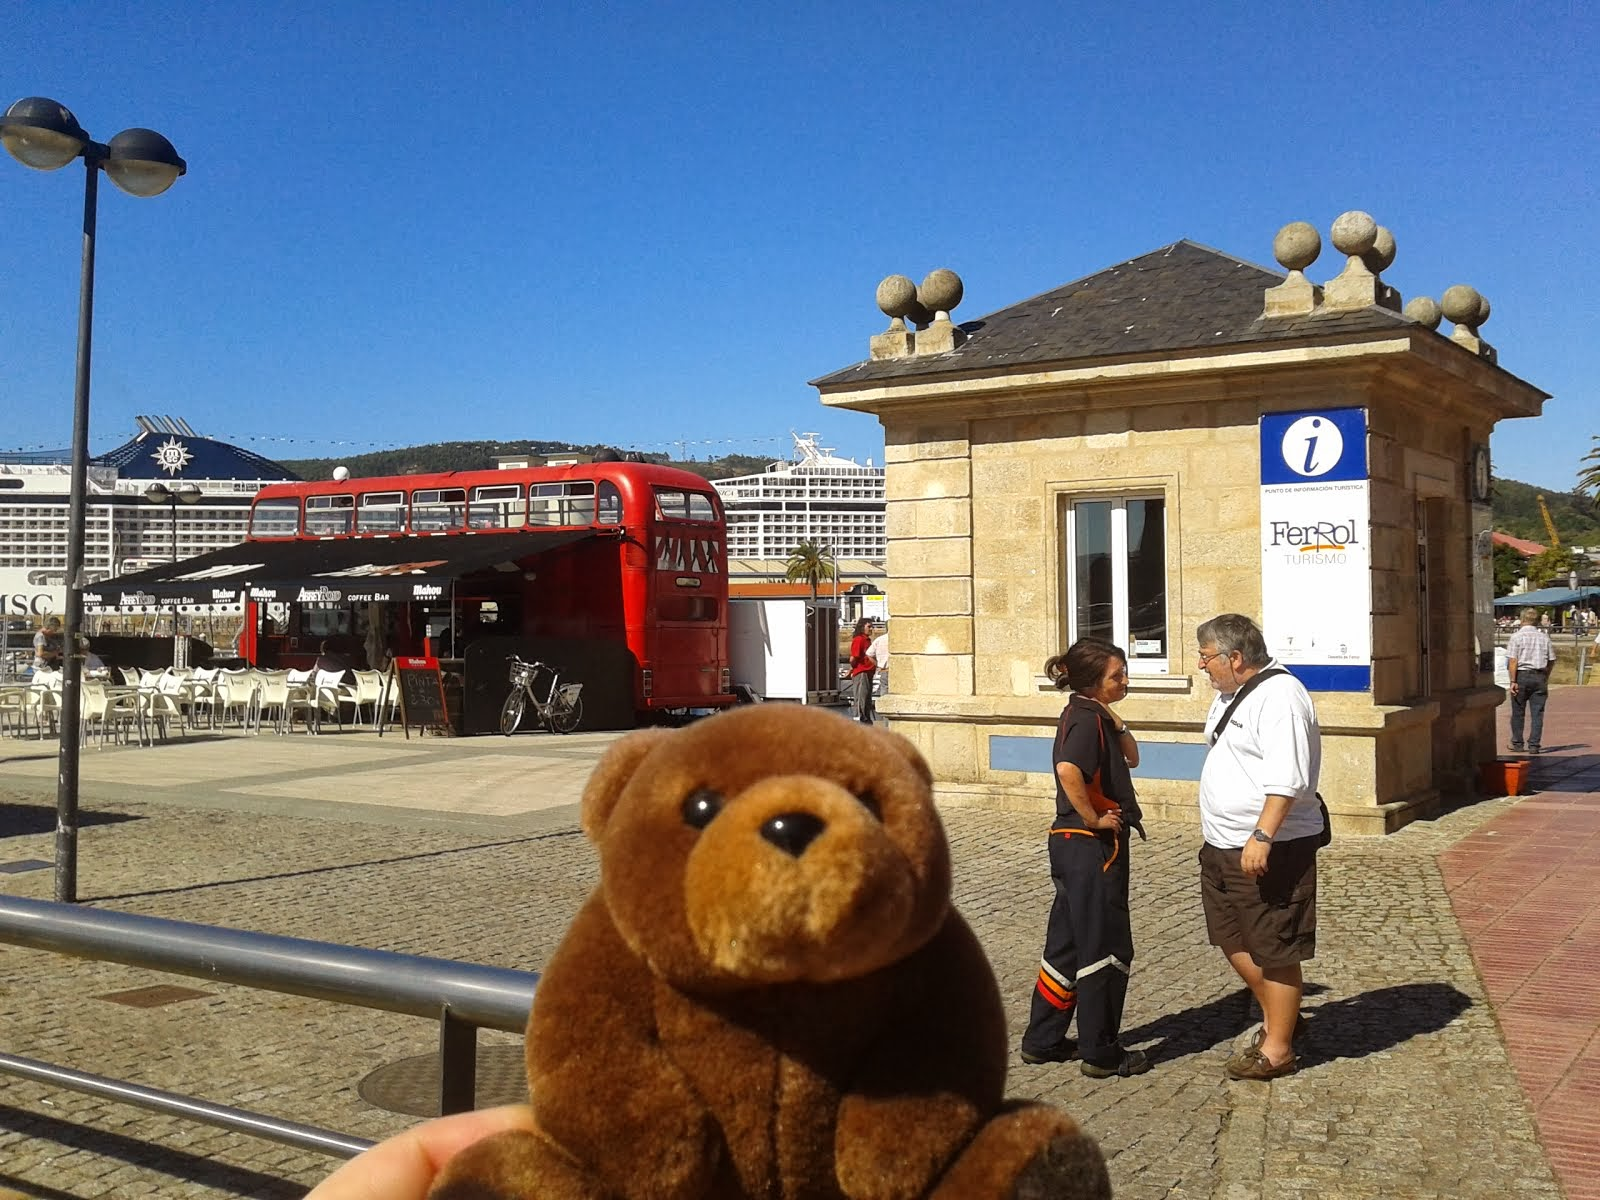 Teddy Bear in Ferrol, Spain